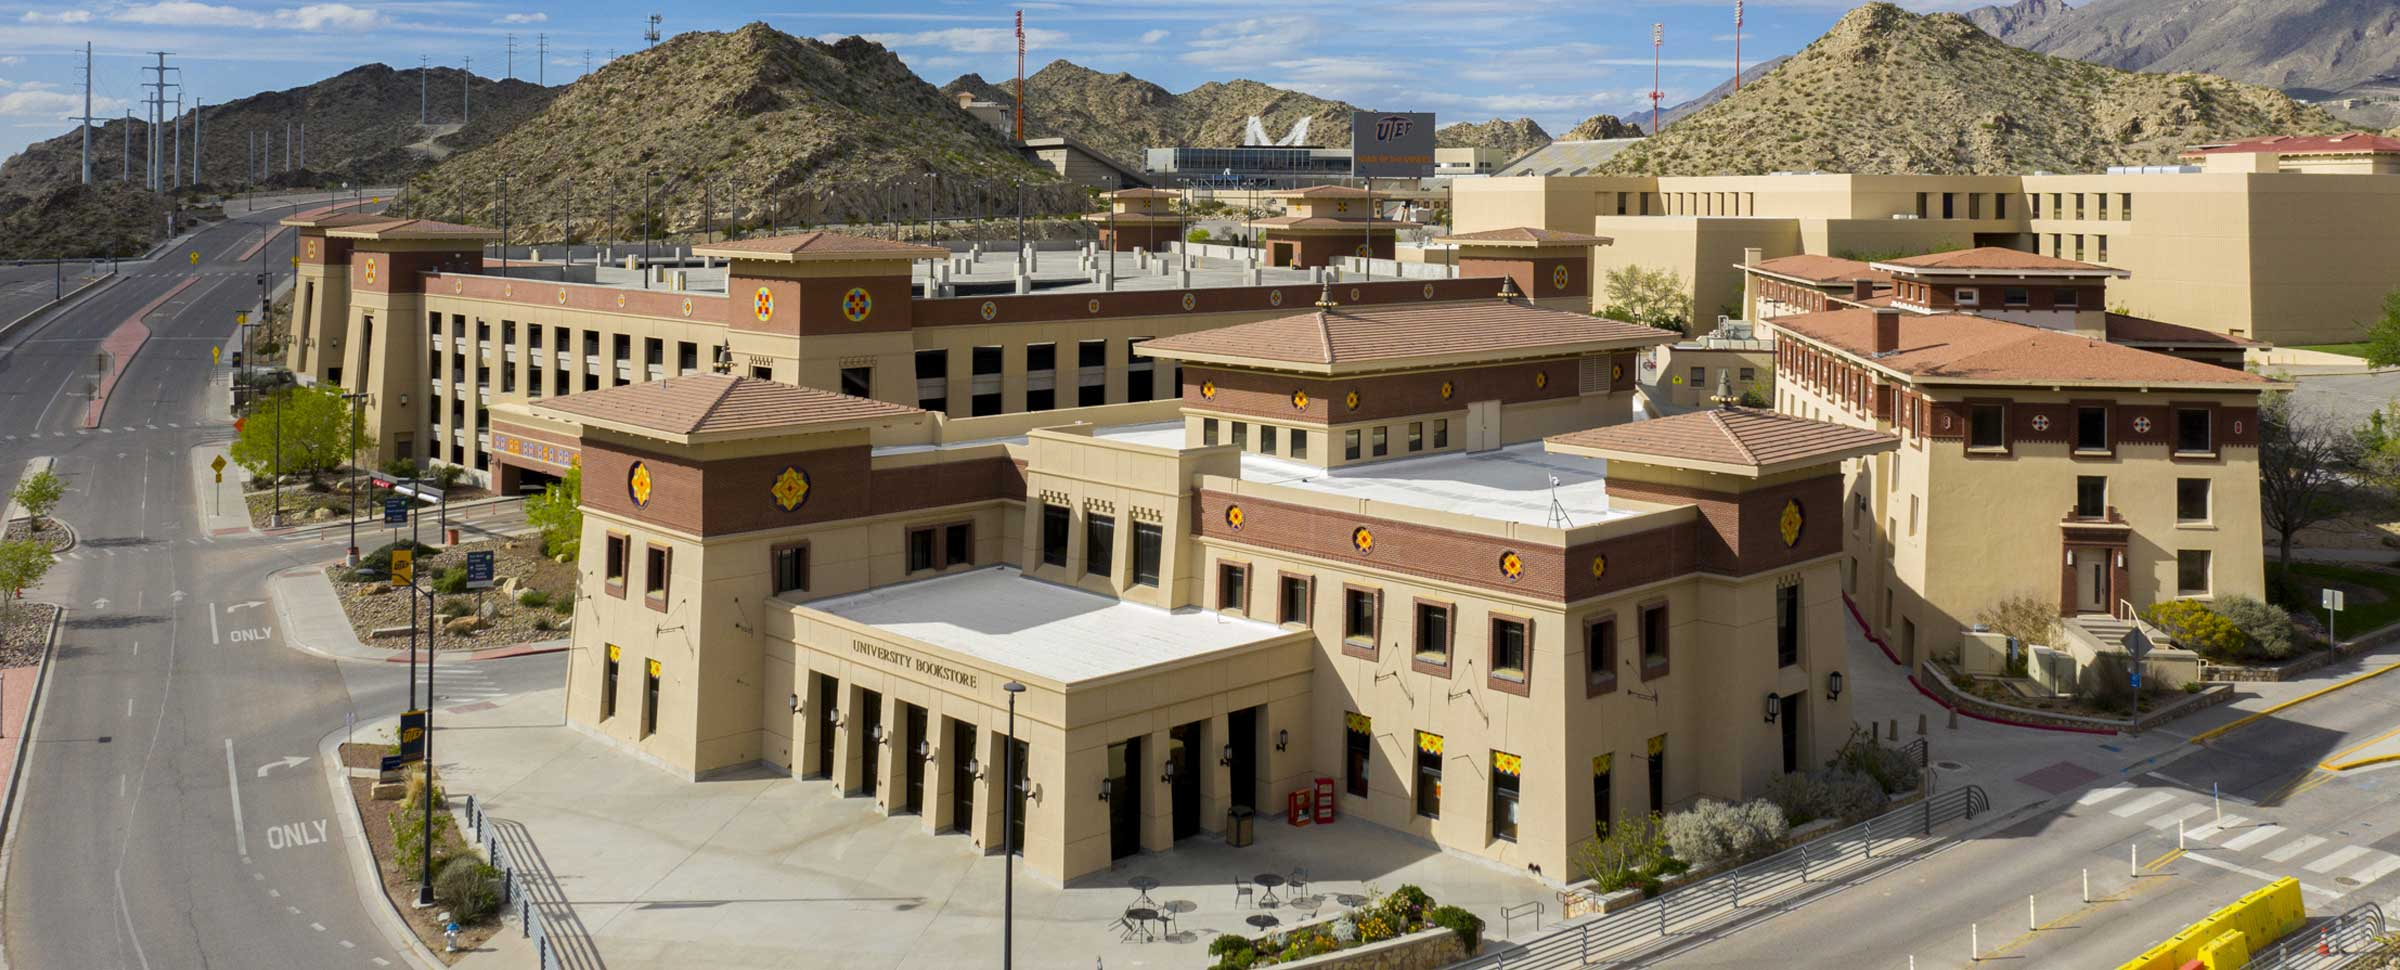 UTEP Services, Facilities Ready for Spring Semester